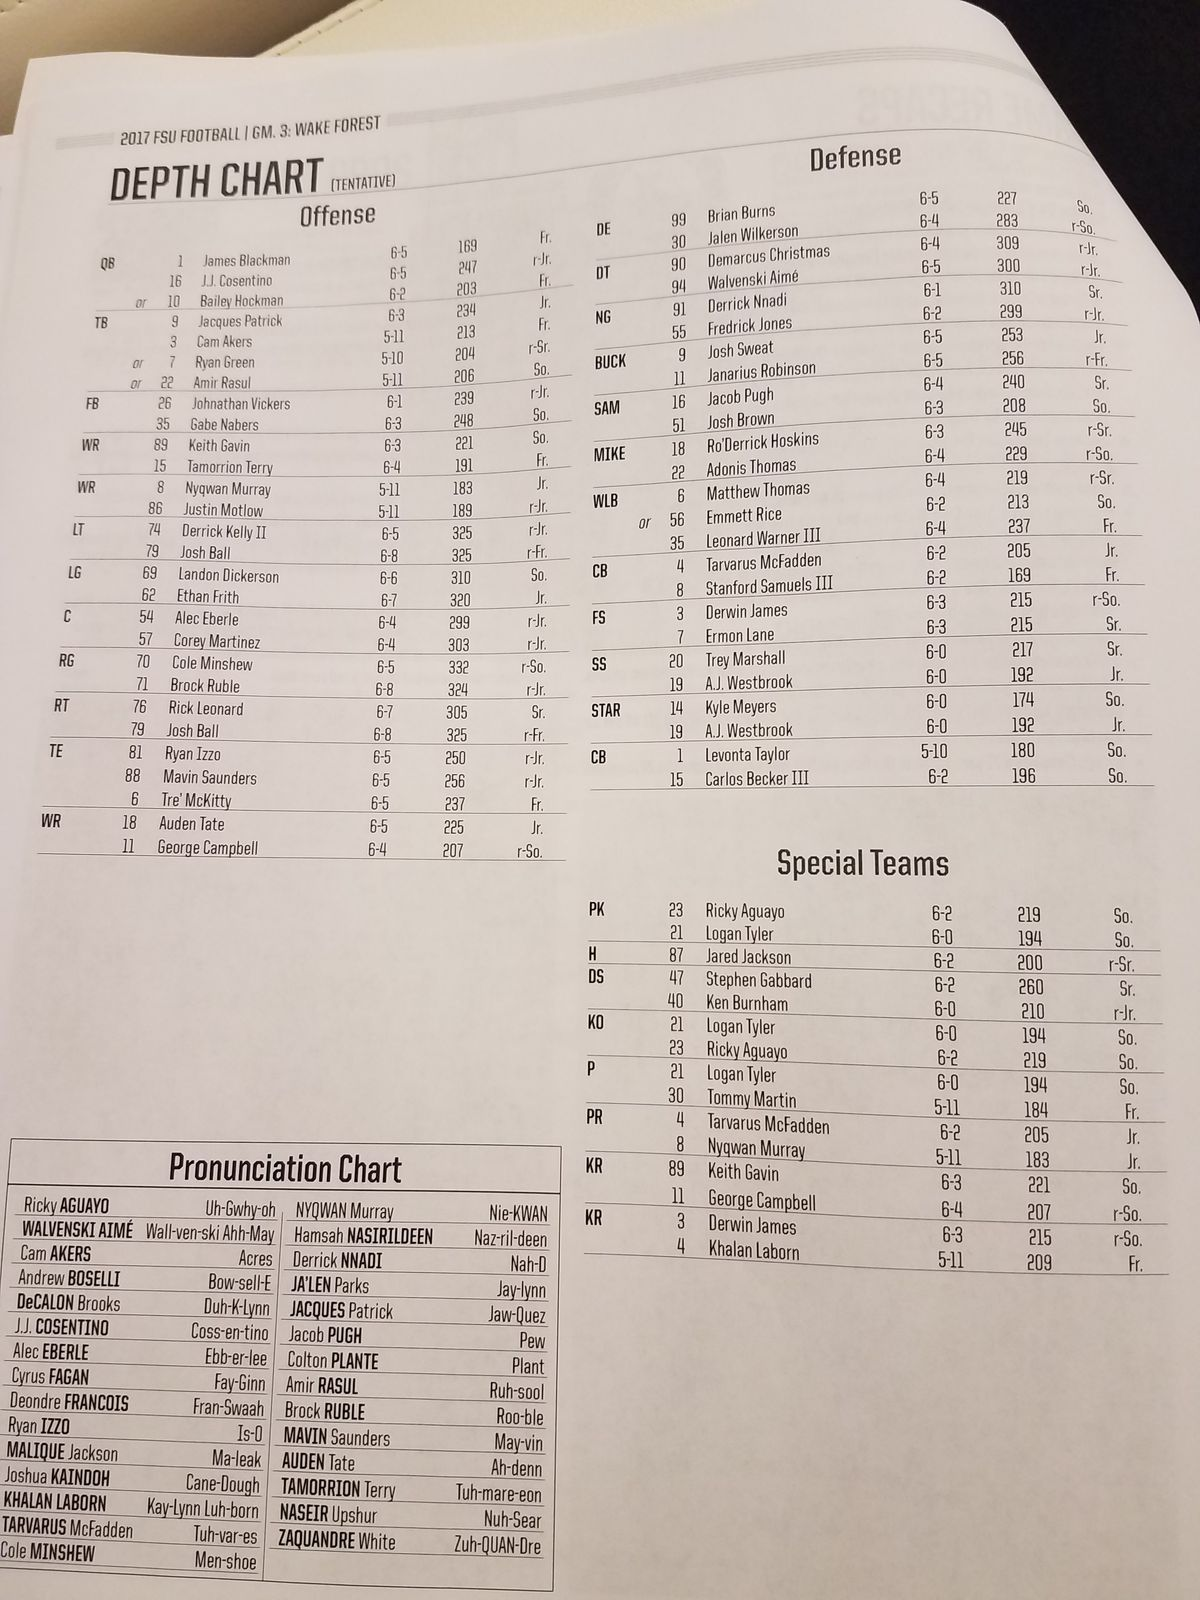 Updating Fsu S Depth Chart For Wake Forest